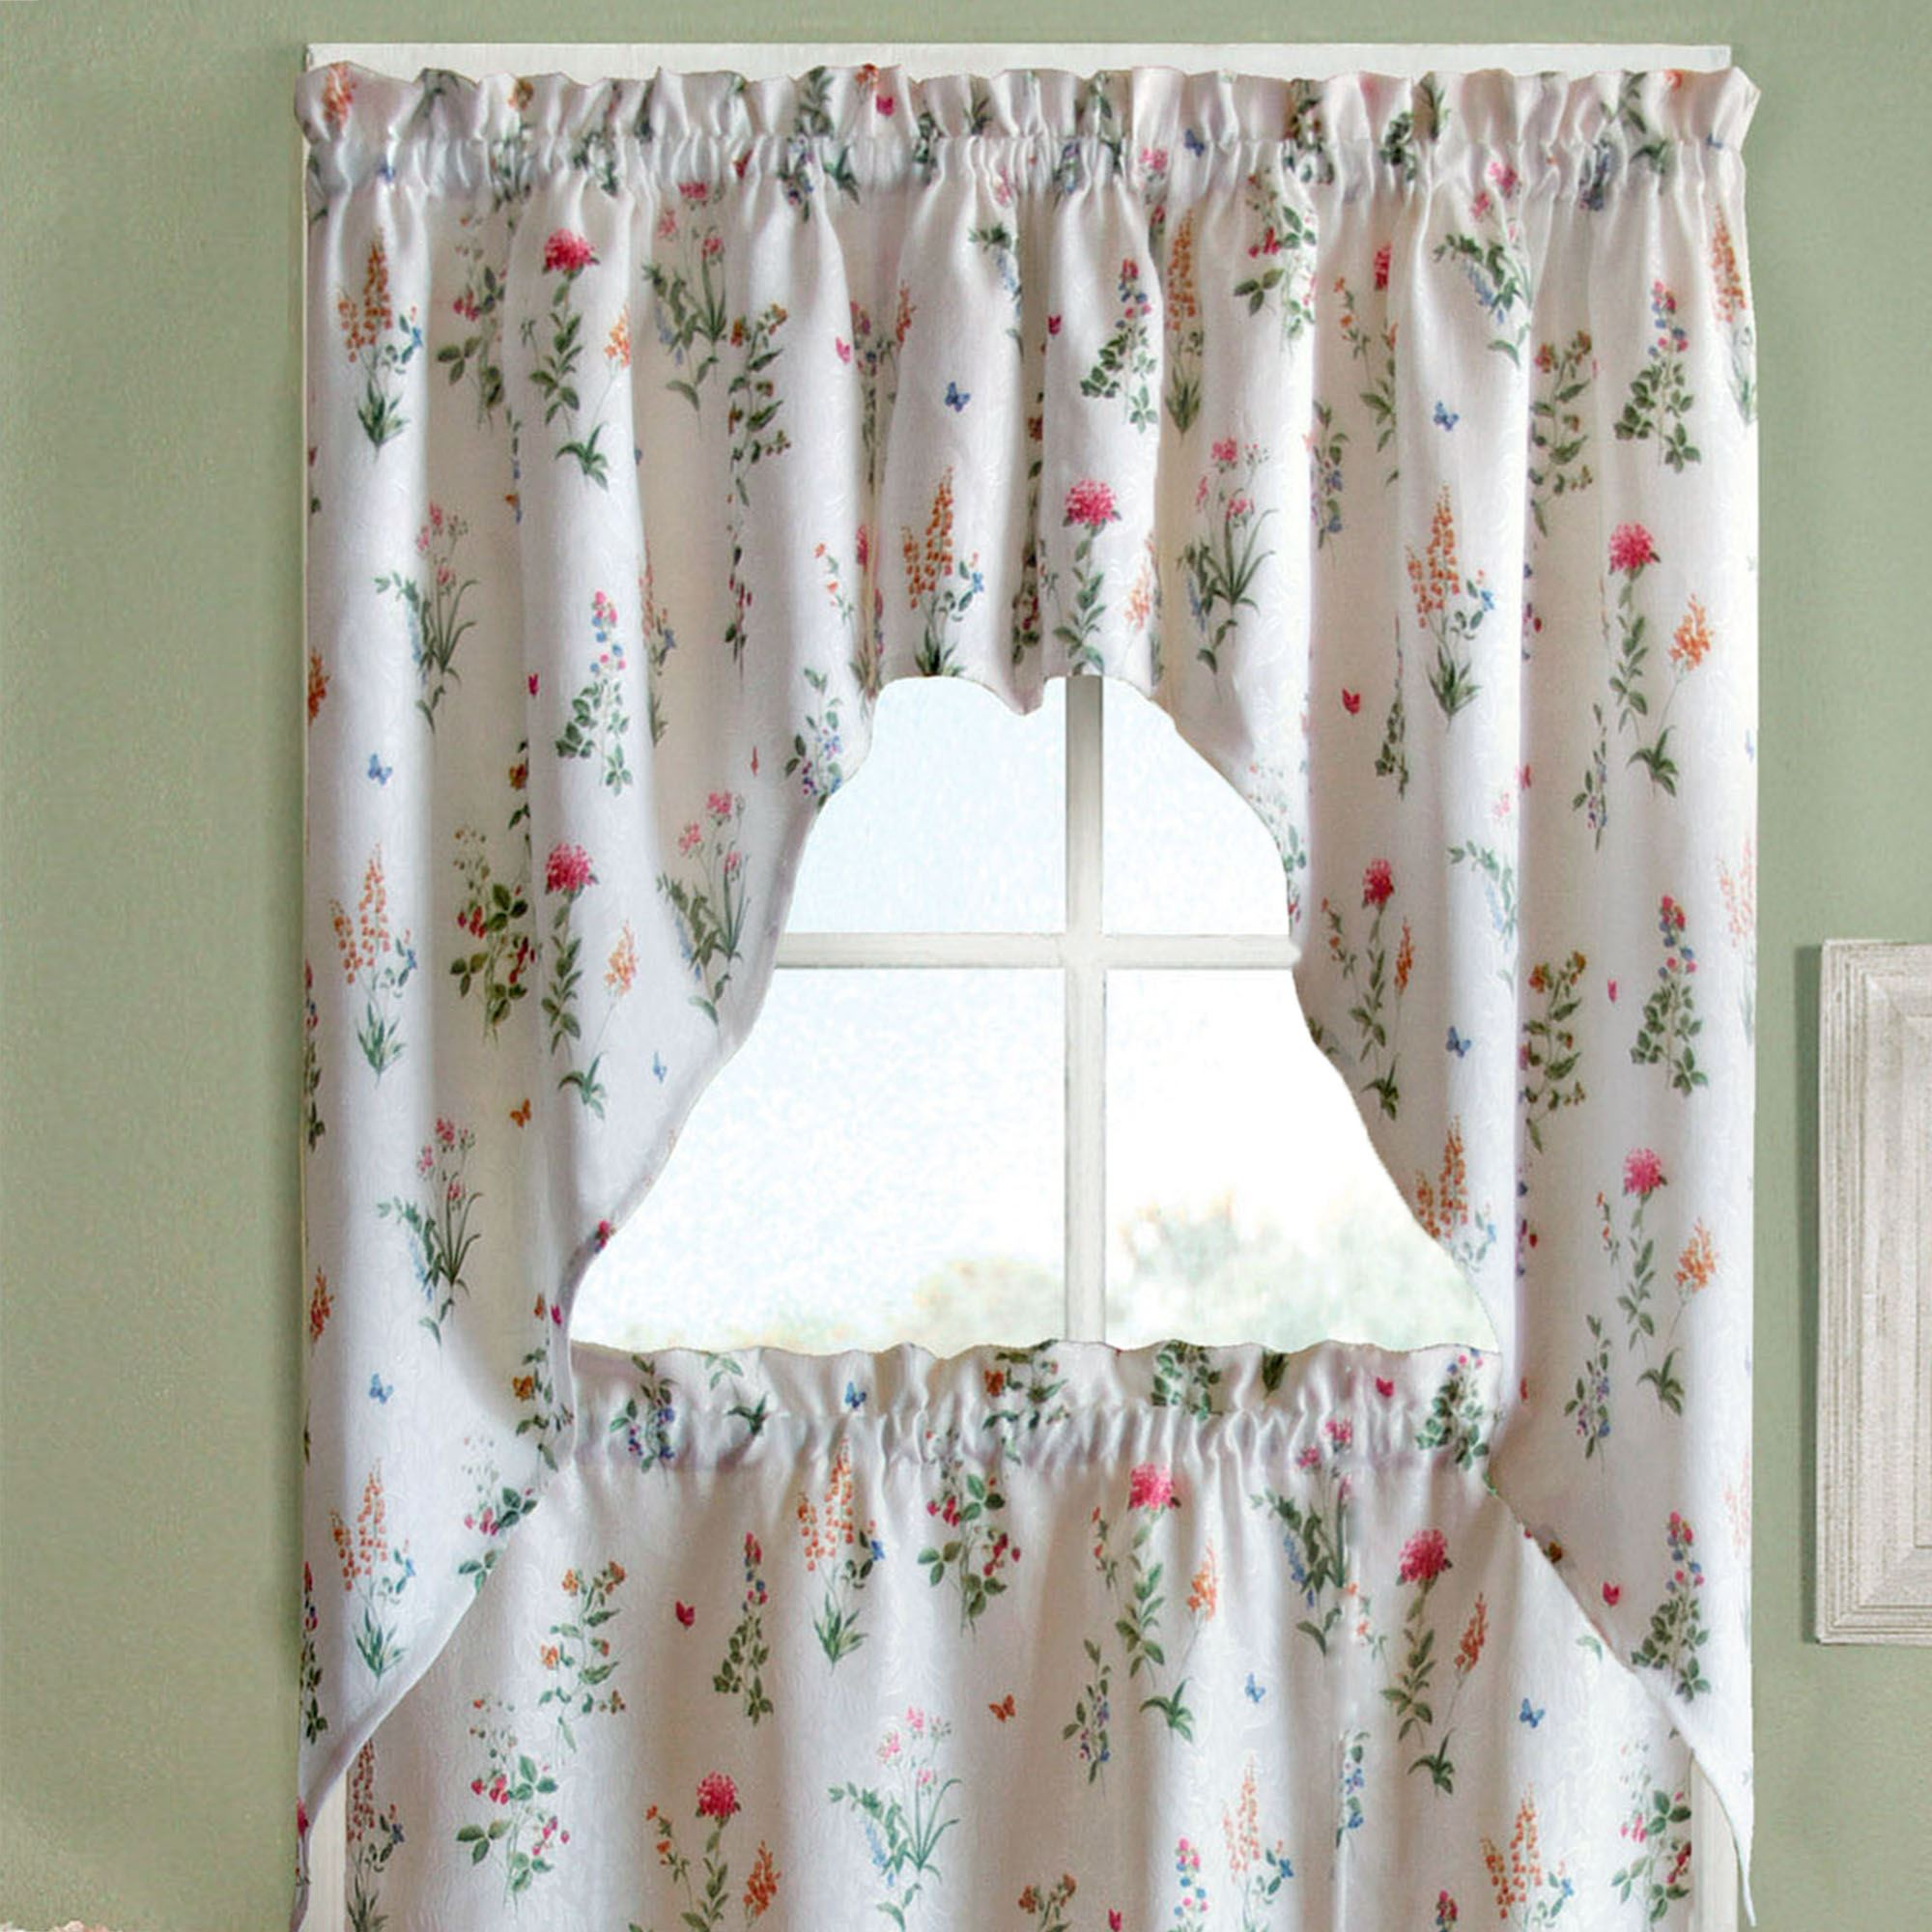 Butterfly Garden Swag Valance Pair White 55 x 38